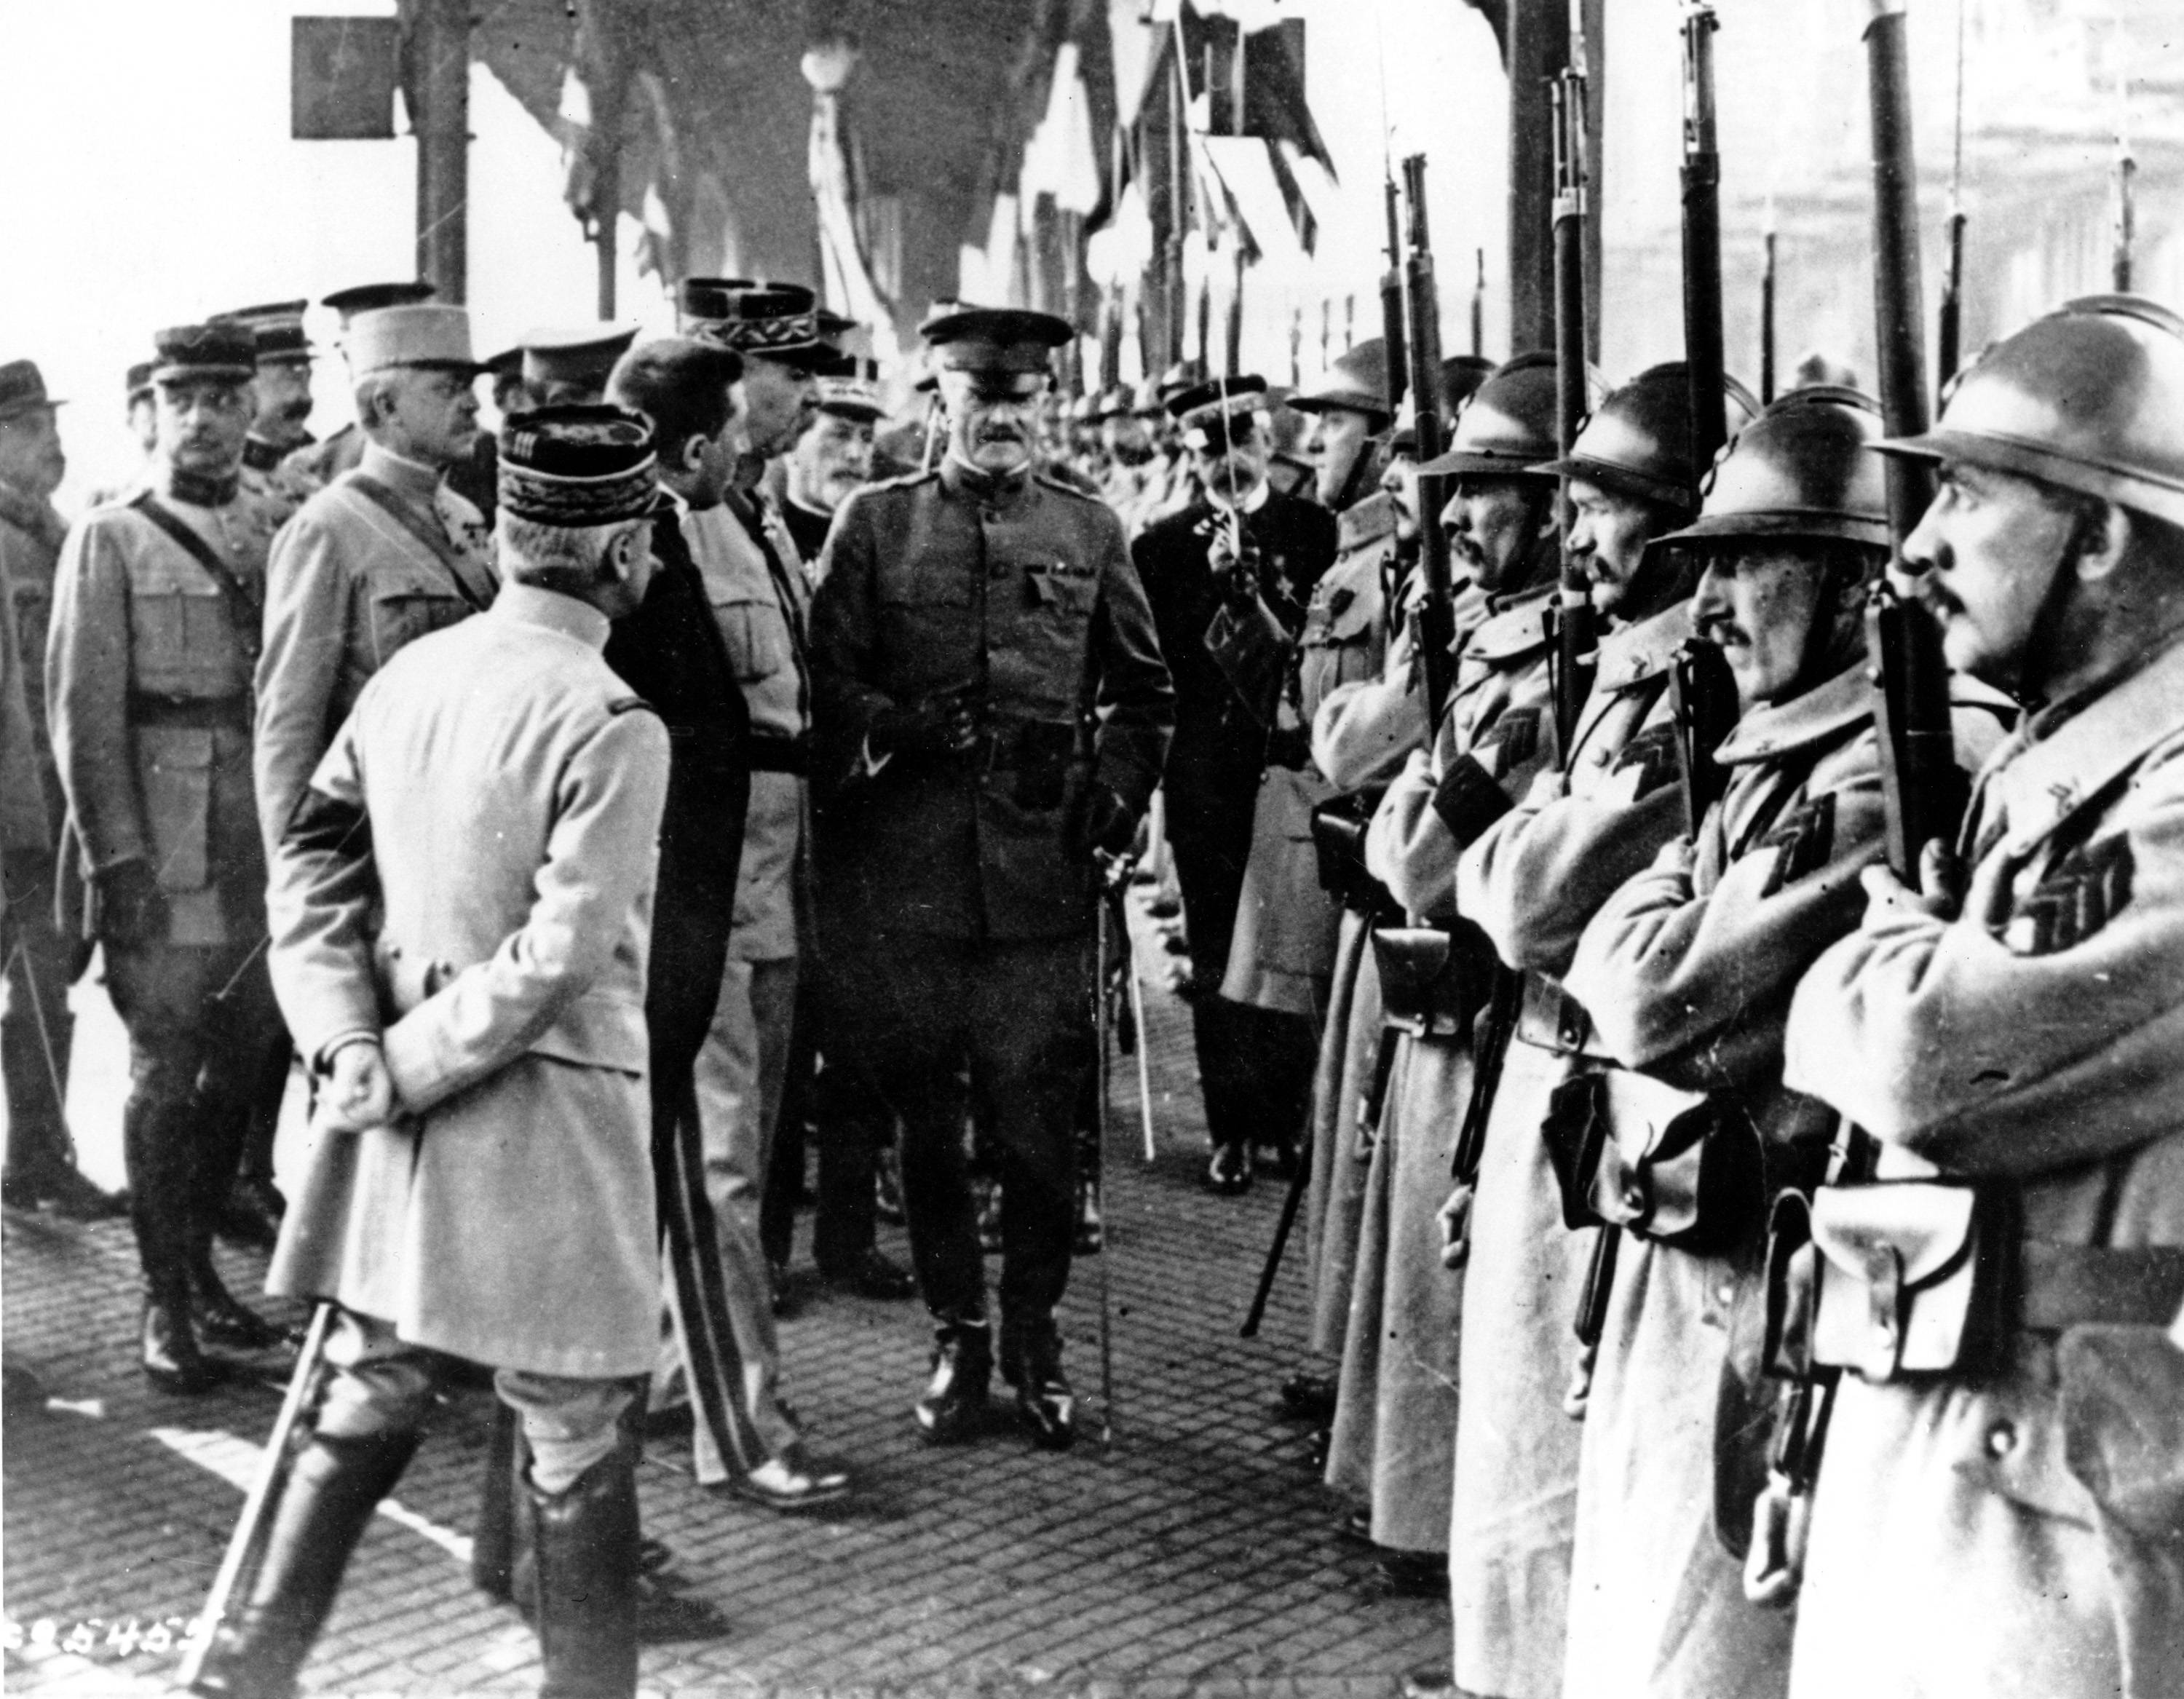 80 OF 100: In this June 13, 1917, file photo, U.S. Army Gen. John J. Pershing, center, inspects French troops at Boulogne, France.